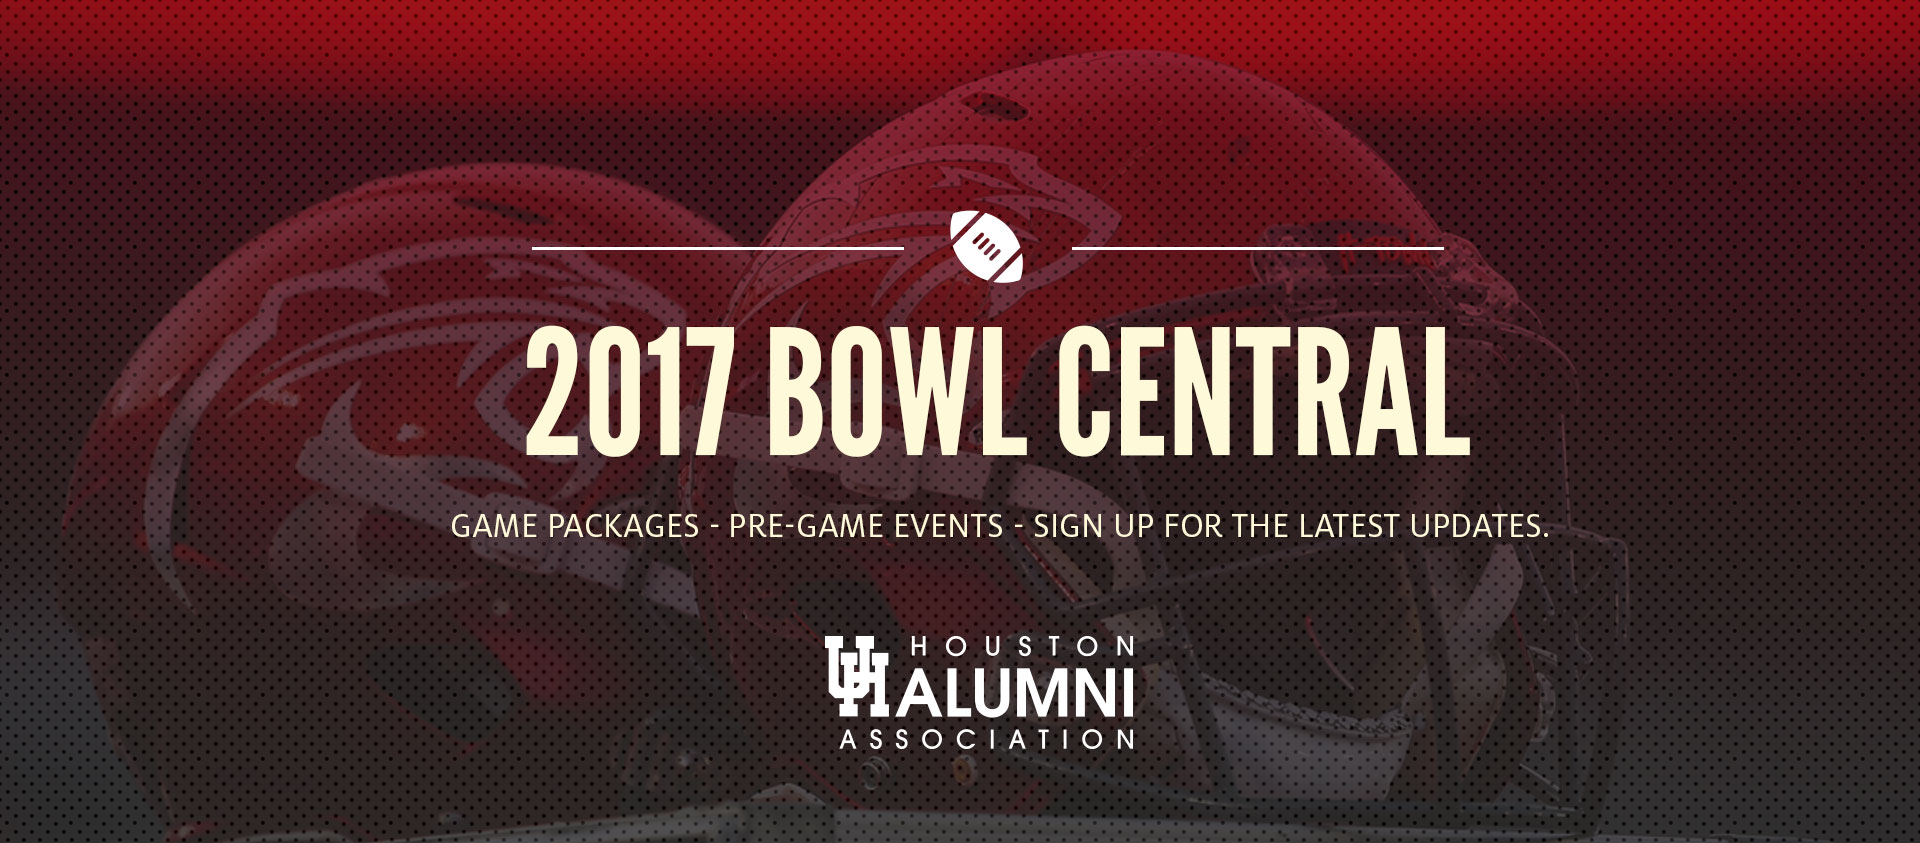 2017 bowl central